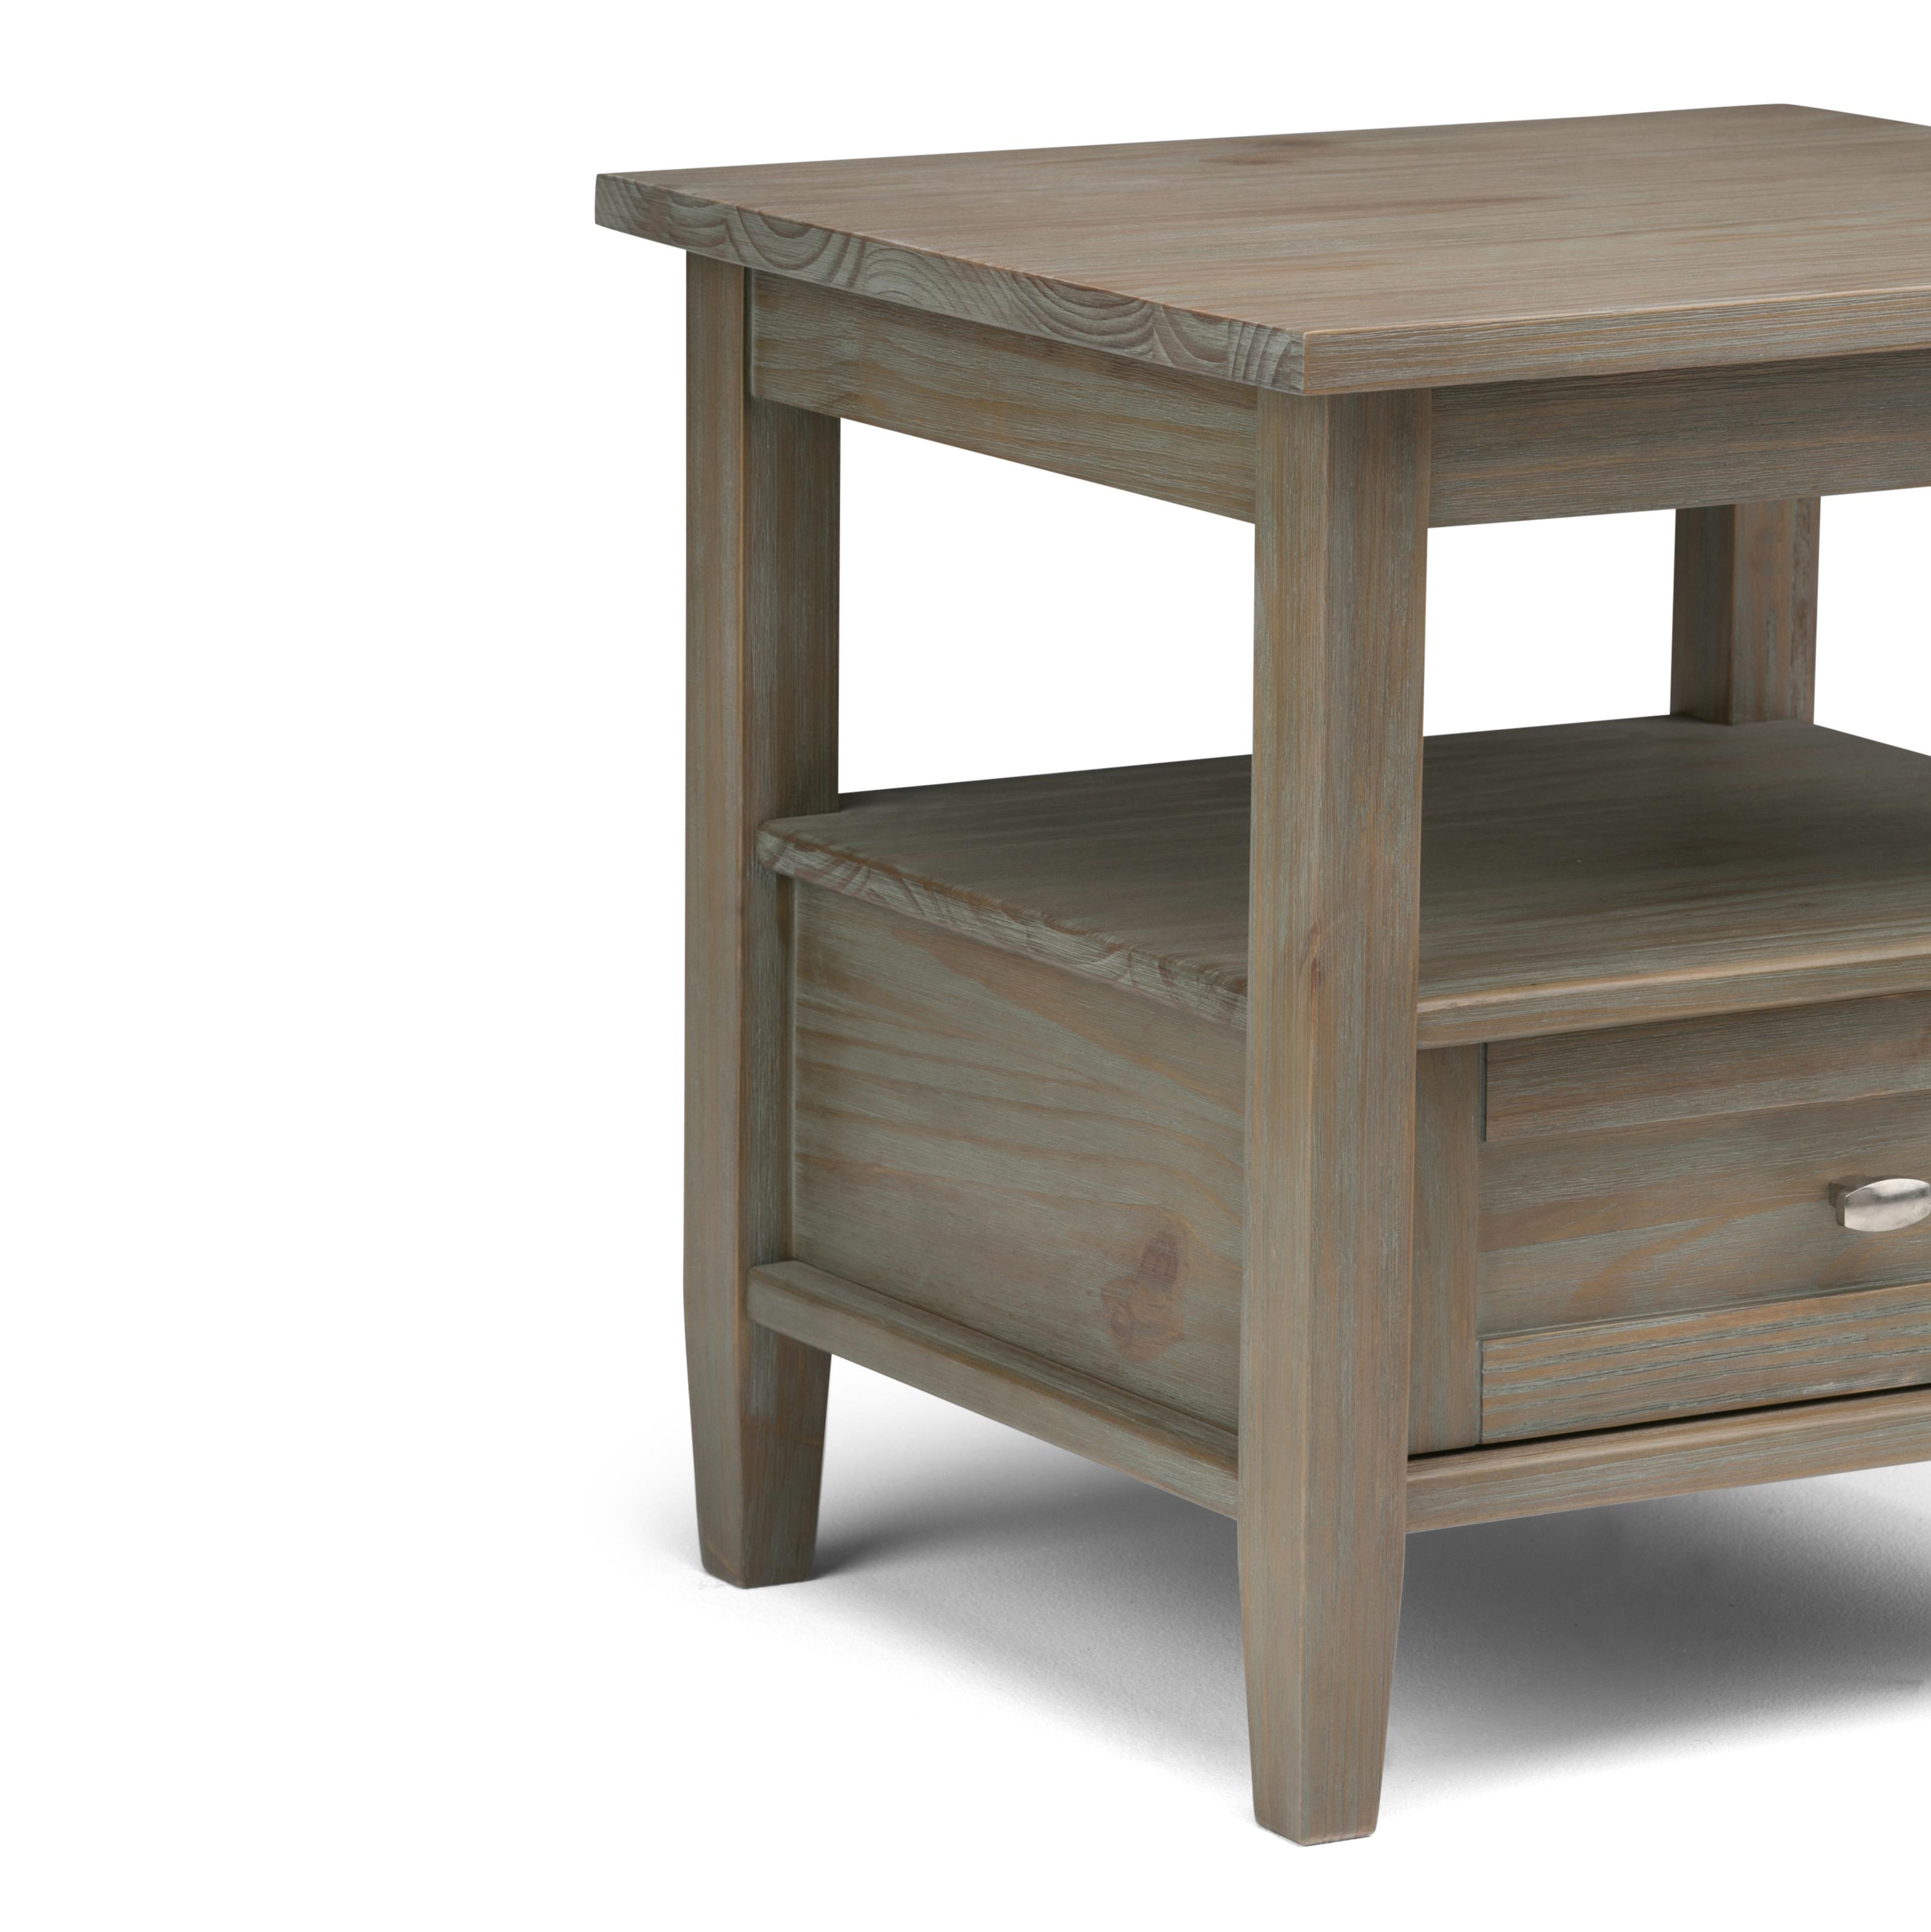 Amazon Linon Titian Rustic Gray Coffee Table Kitchen: Amazon.com: Simpli Home AXWSH002-GR Warm Shaker Solid Wood